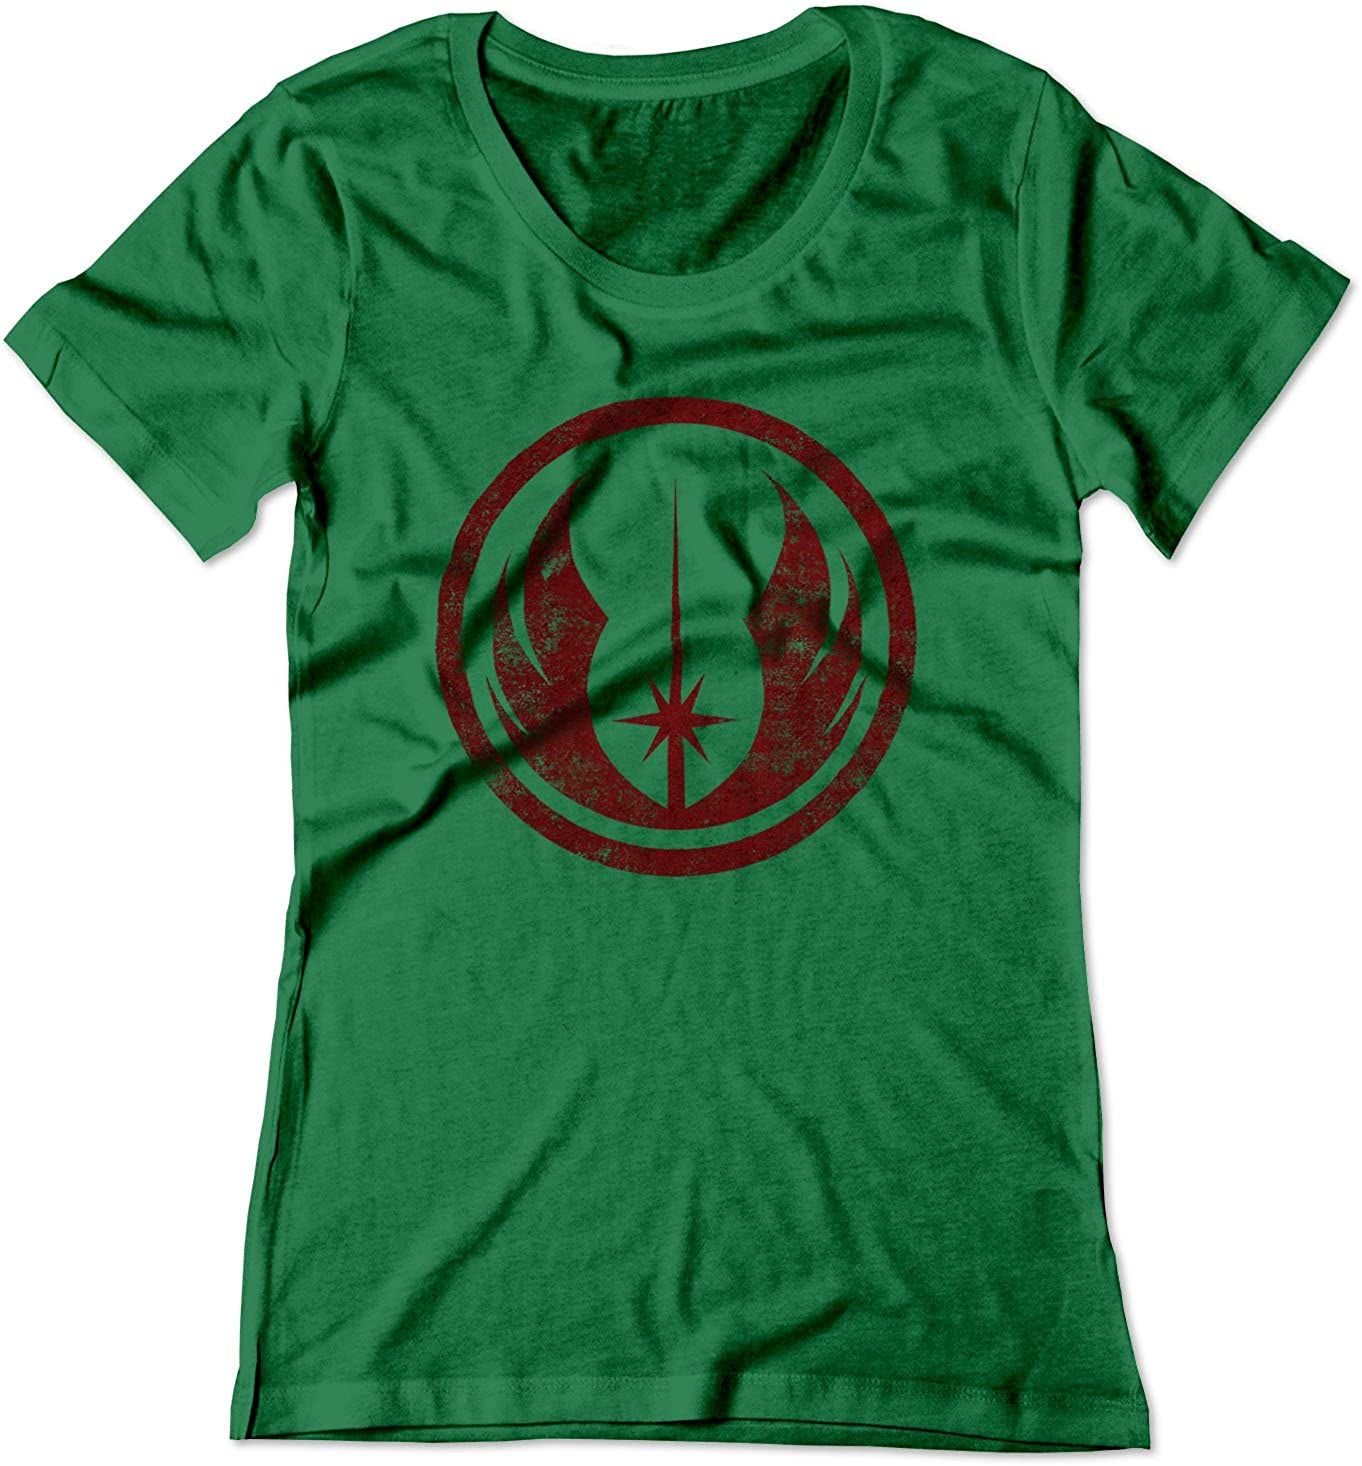 d428bbdd Amazon.com: BSW Women's Star Wars Jedi Order Vintage Style Logo Shirt:  Clothing